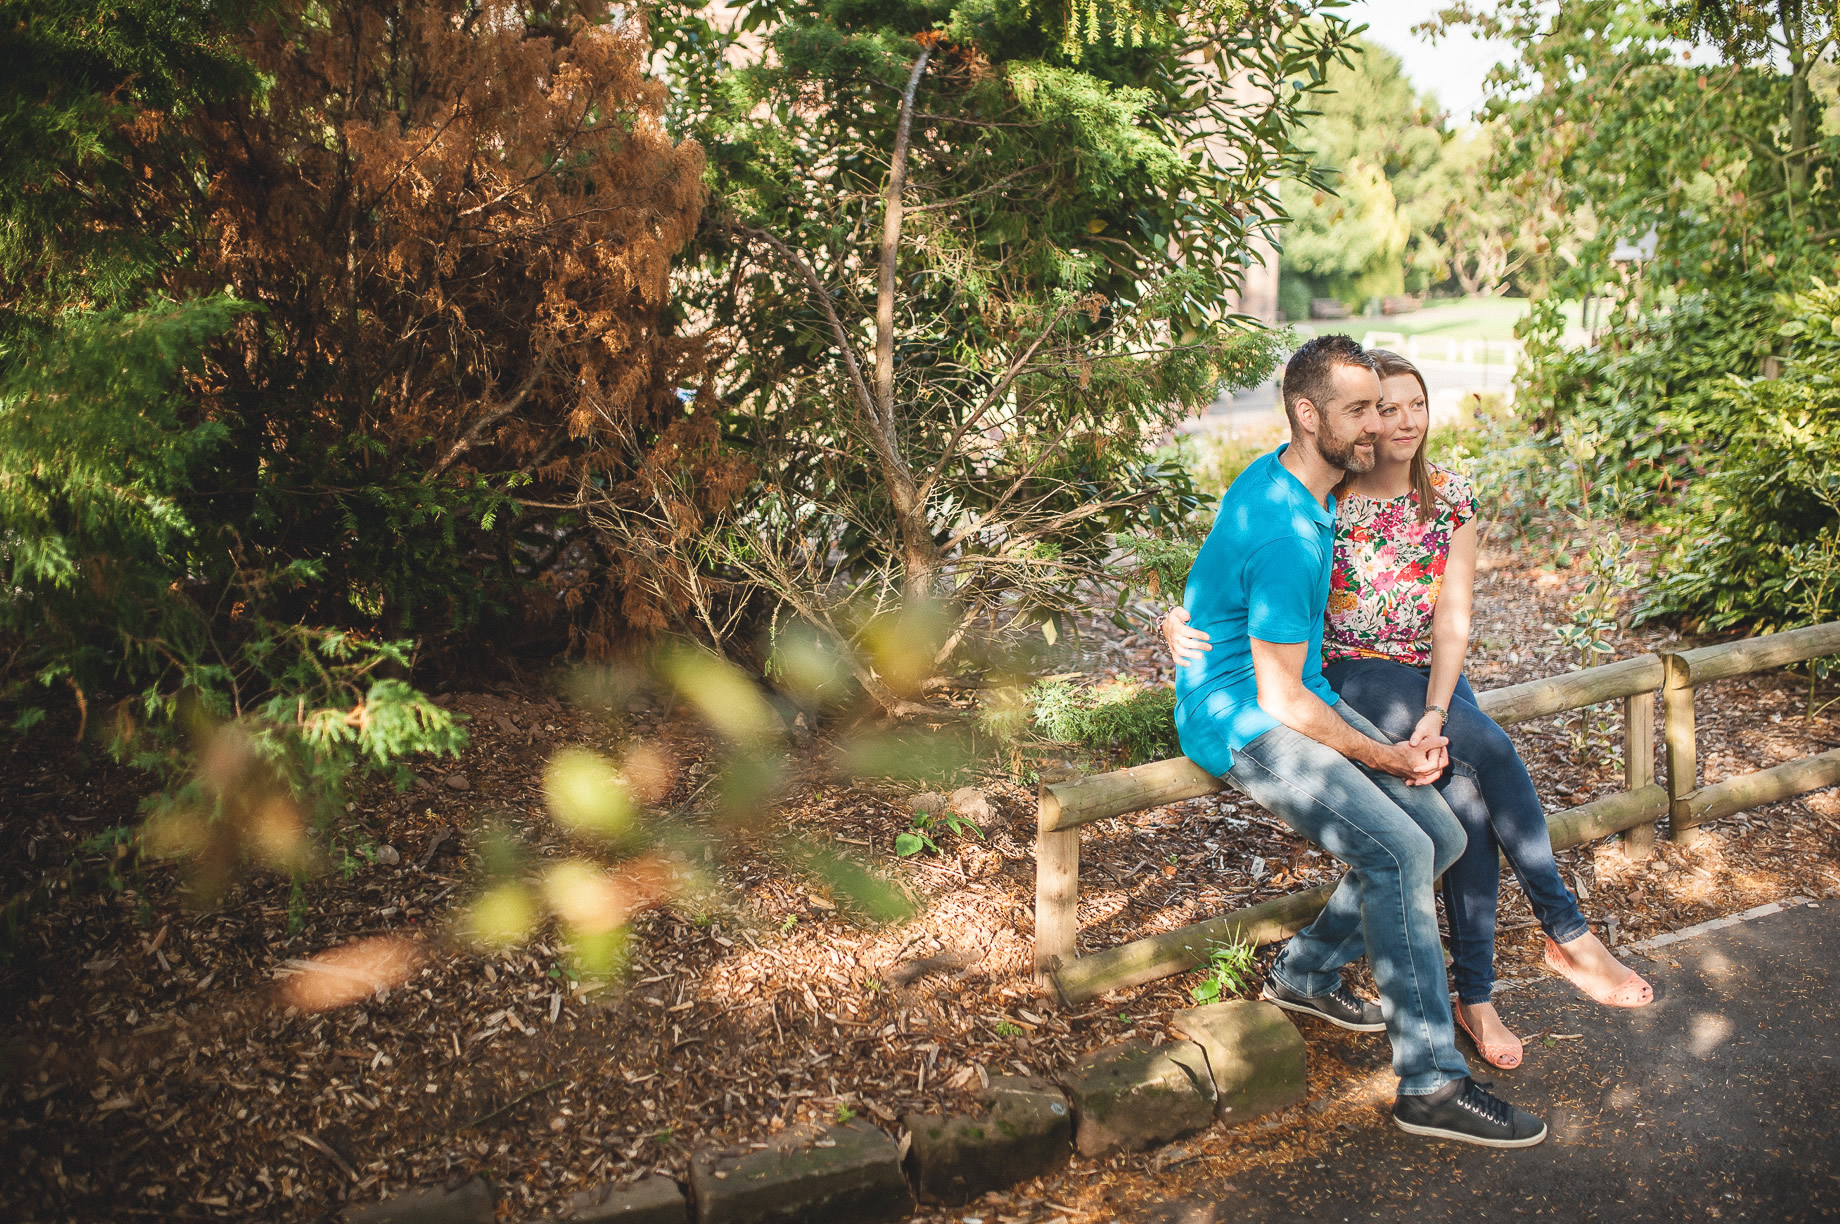 Keri and Paul's Pre-Wedding Shoot at Walton Gardens 002